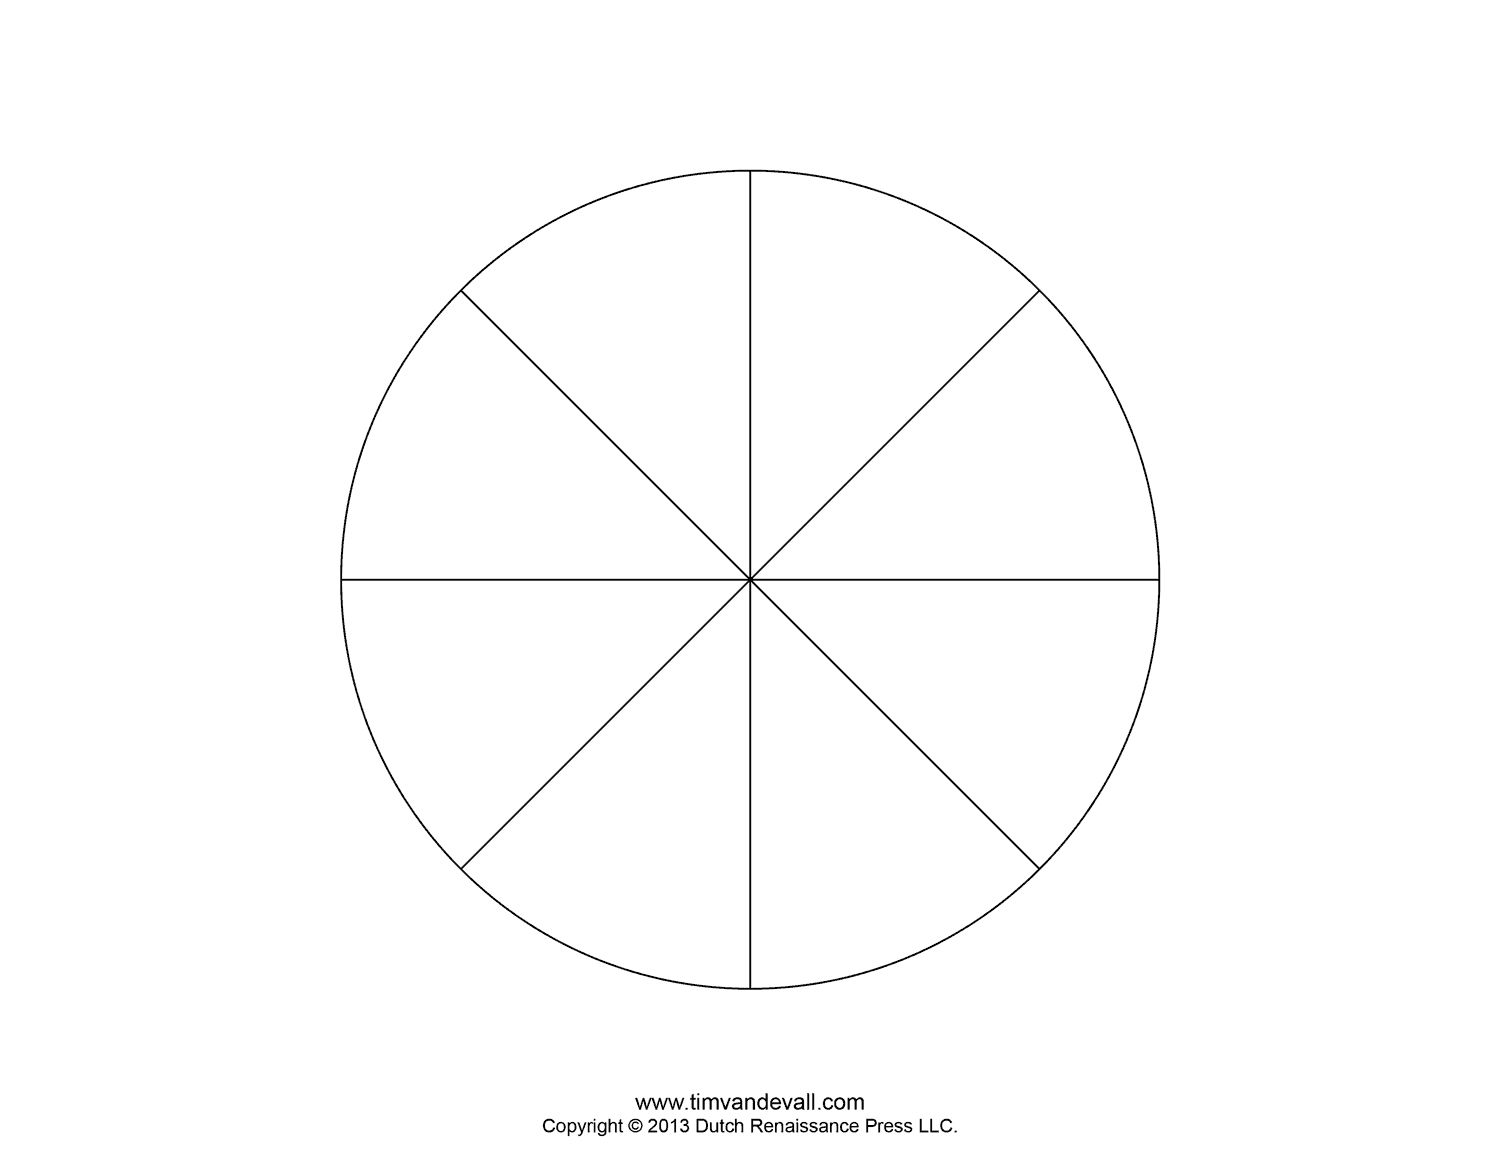 Blank Pie Chart Templates Make A Pie Chart With Regard To 5 Piece Pie Chart Template 201820159 Circle Graph Printable Circles Pie Chart Template [ 1159 x 1500 Pixel ]